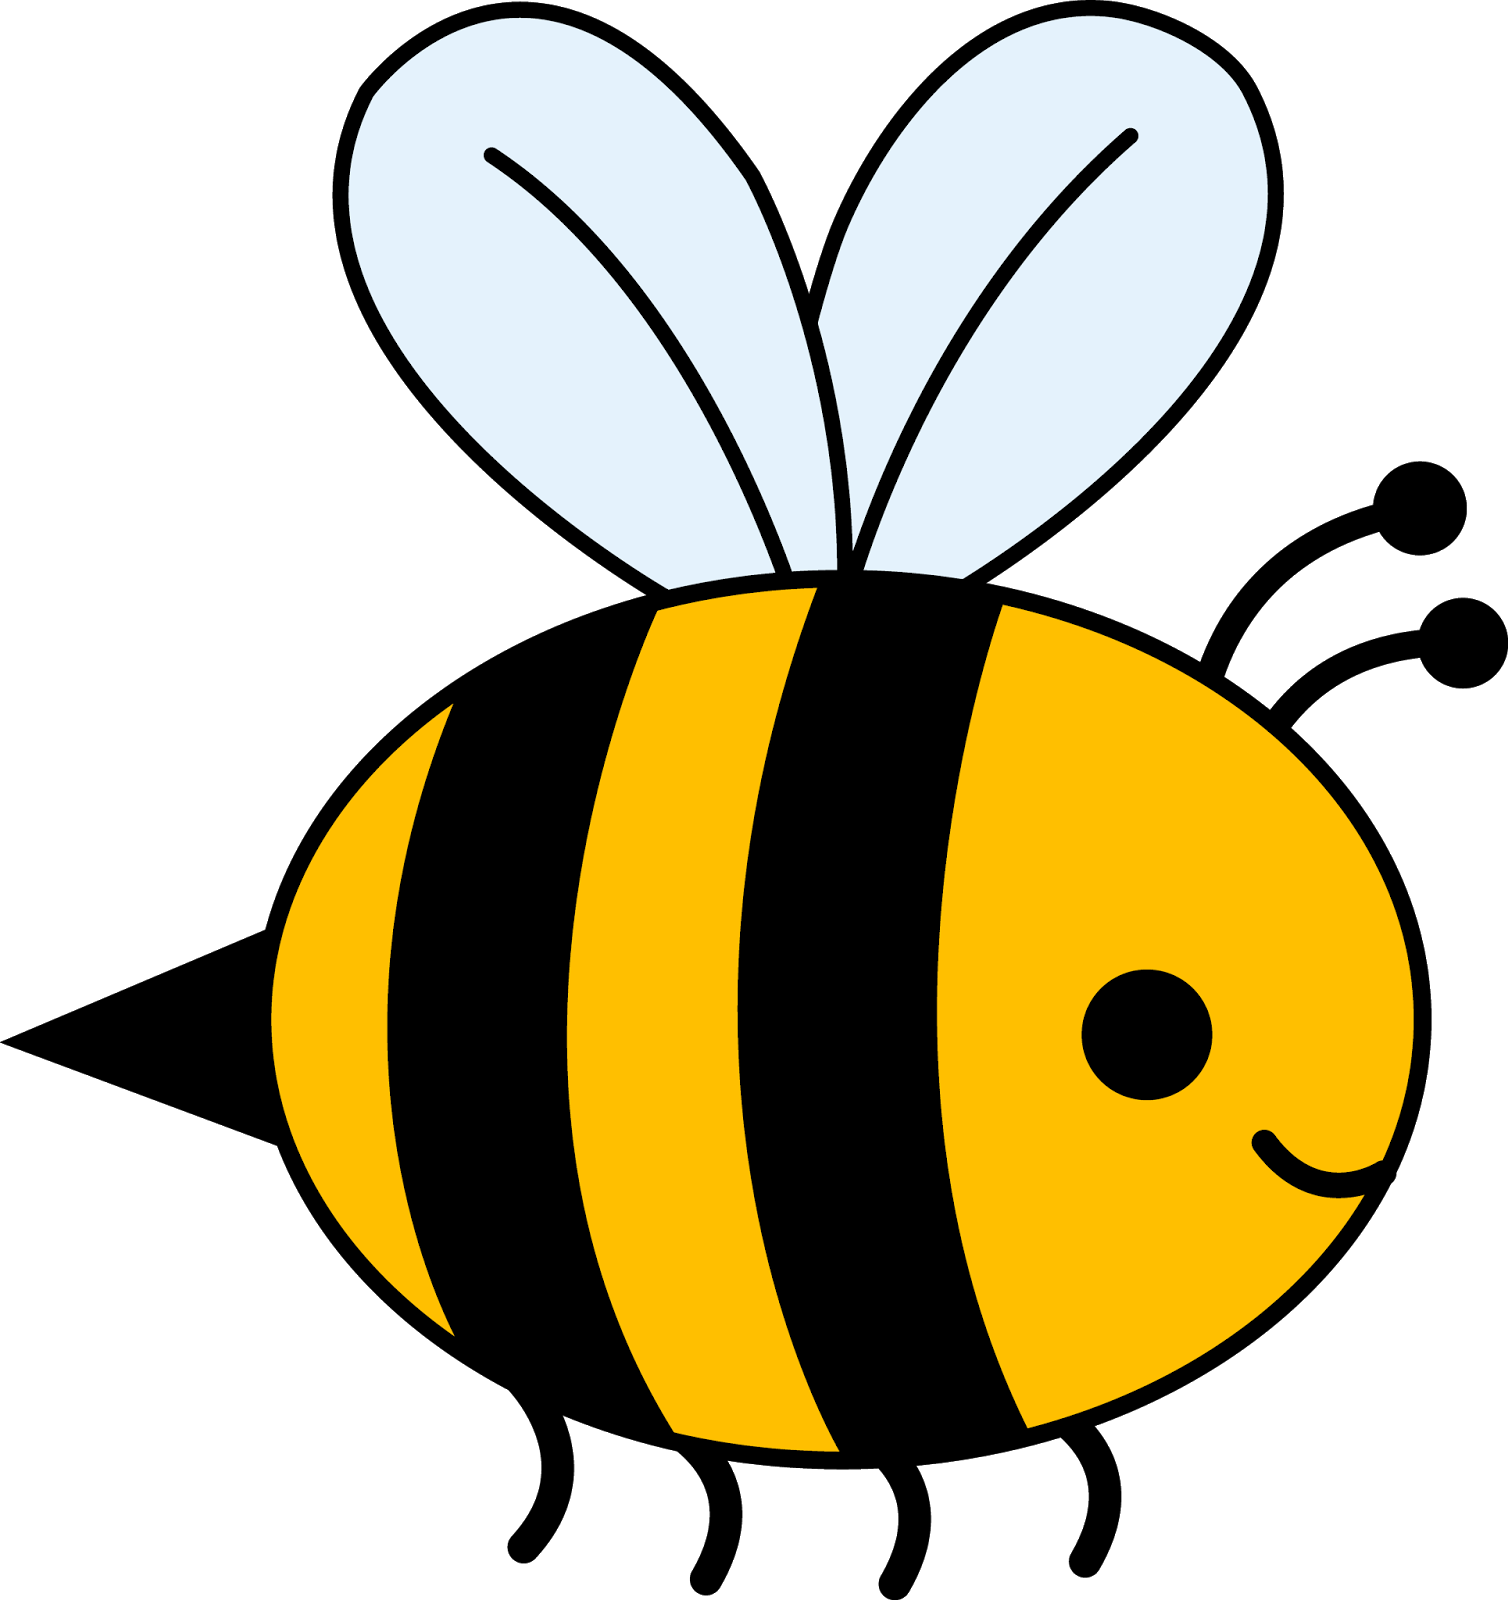 Images For > Bumble Bee Hive Clip Art